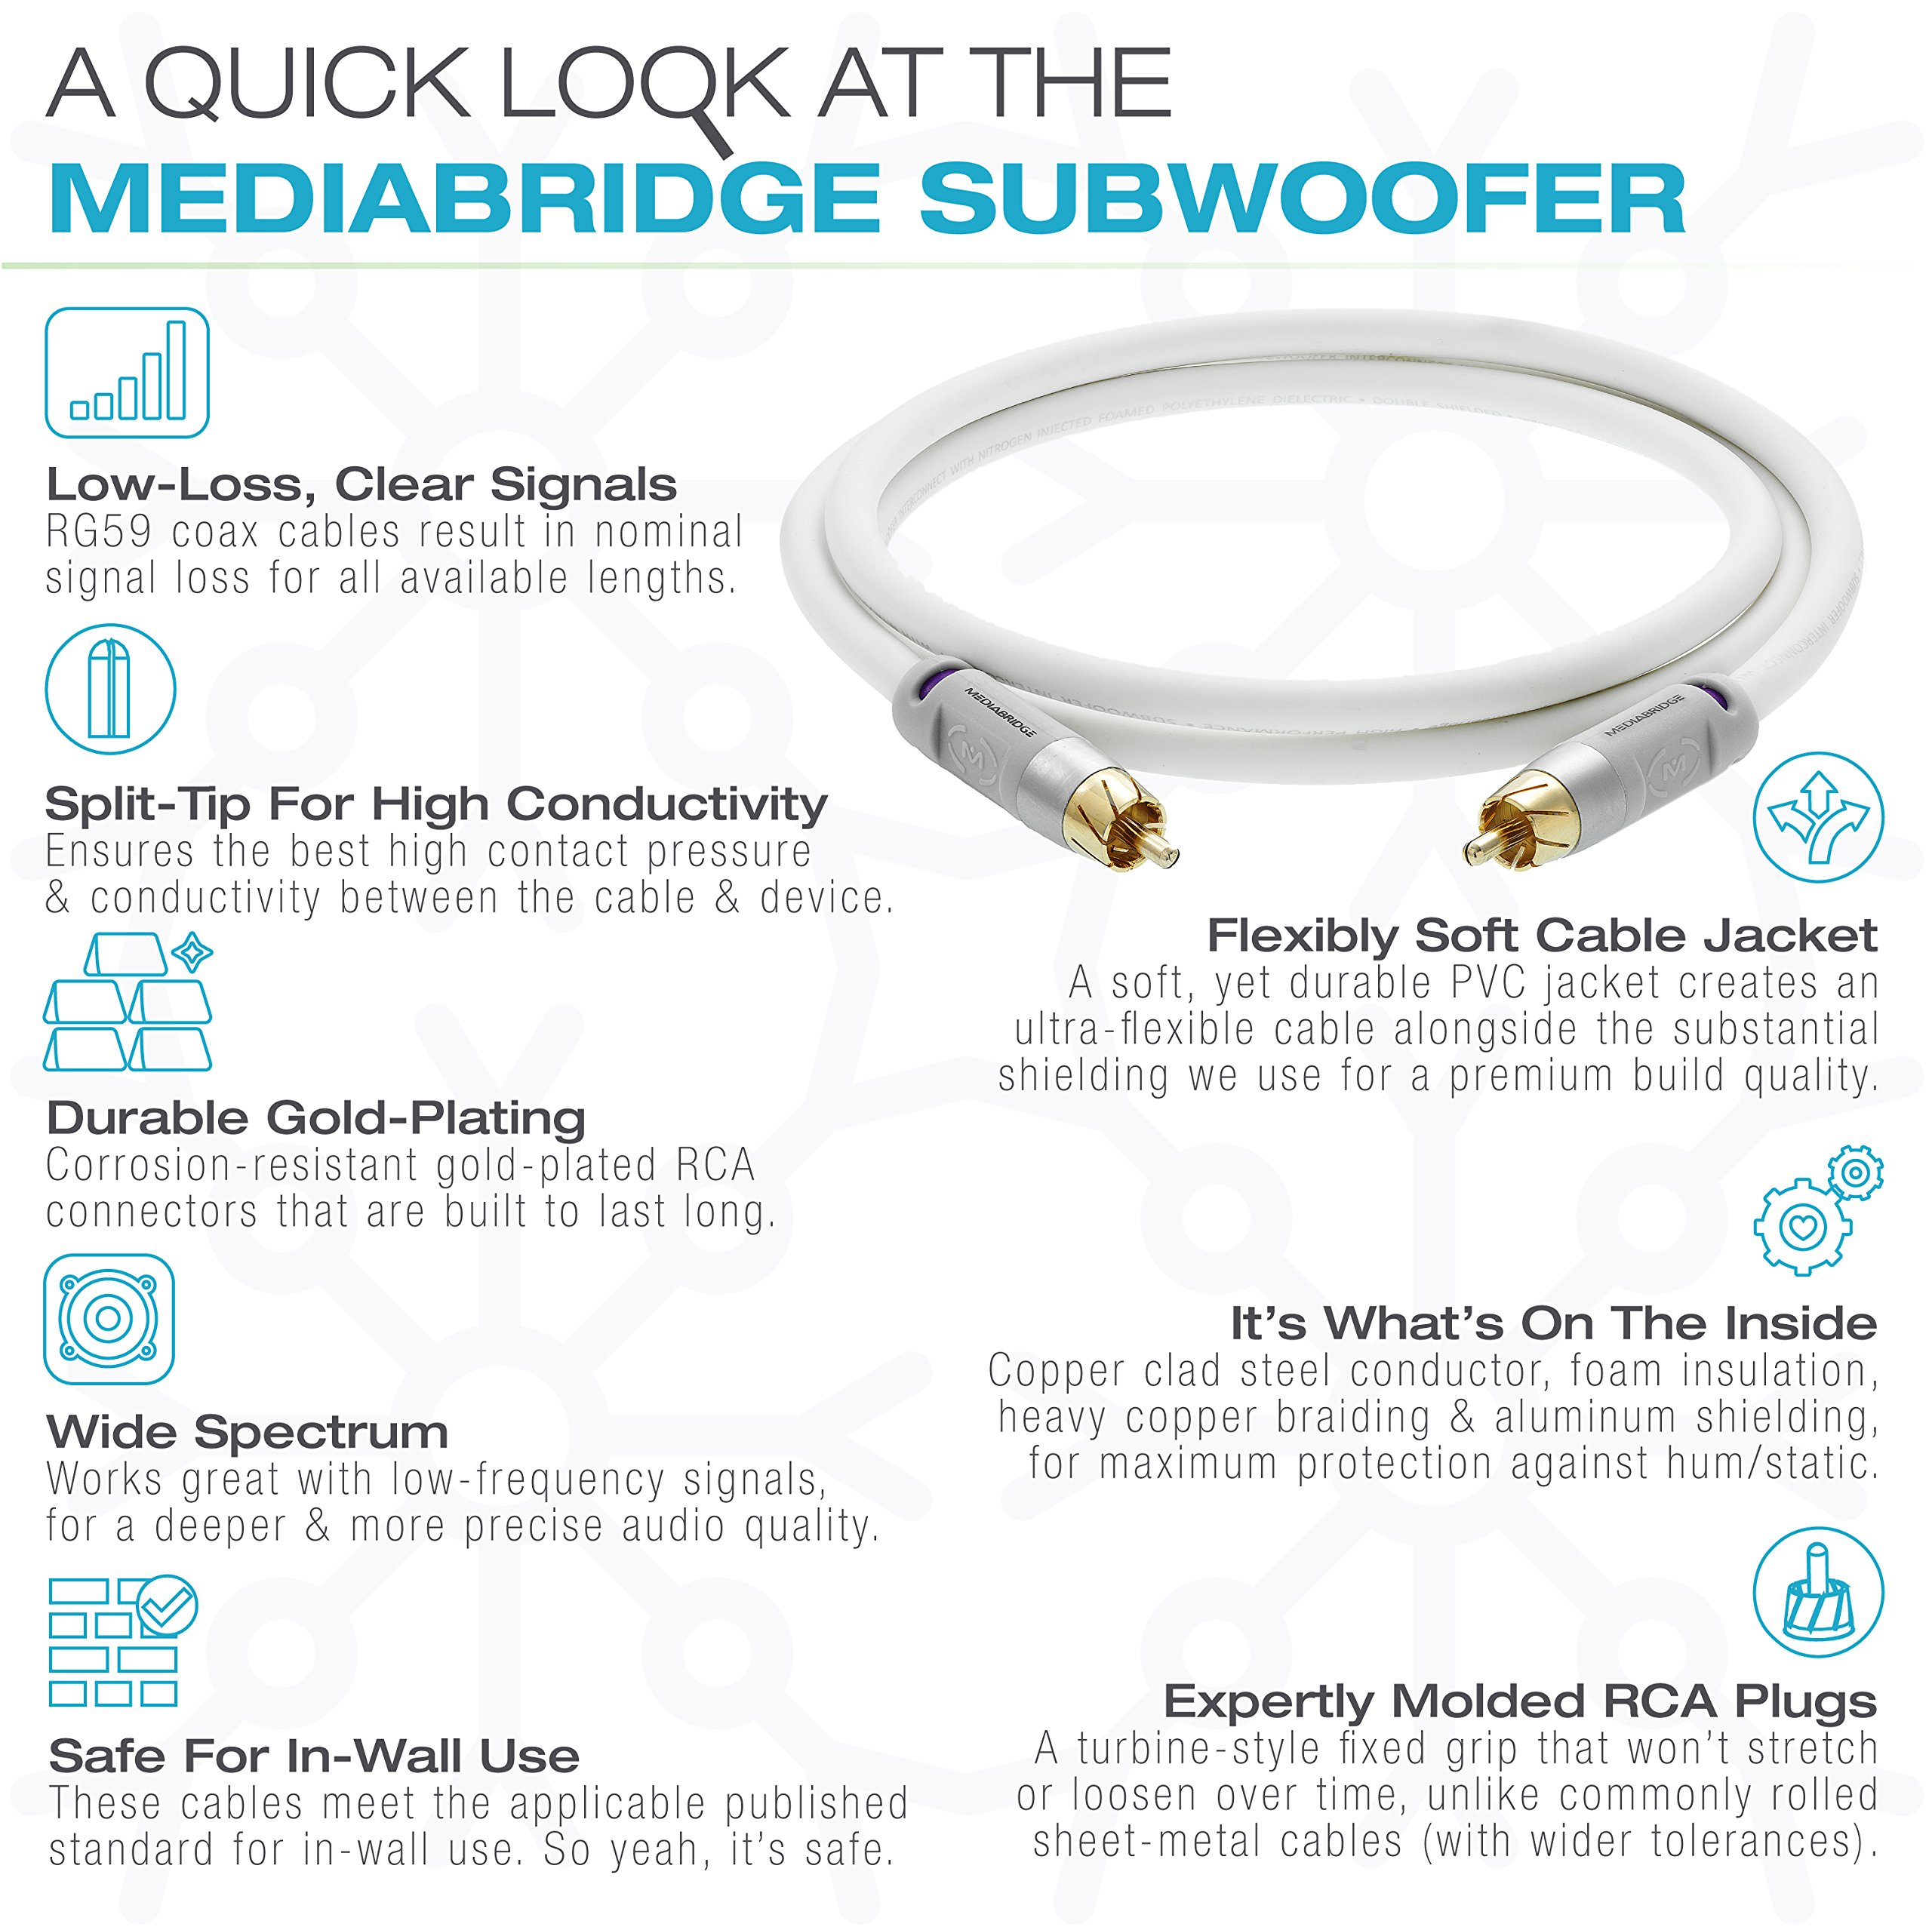 ULTRA Series Subwoofer Cable - Dual Shielded RCA to RCA by Mediabridge (Image #6)